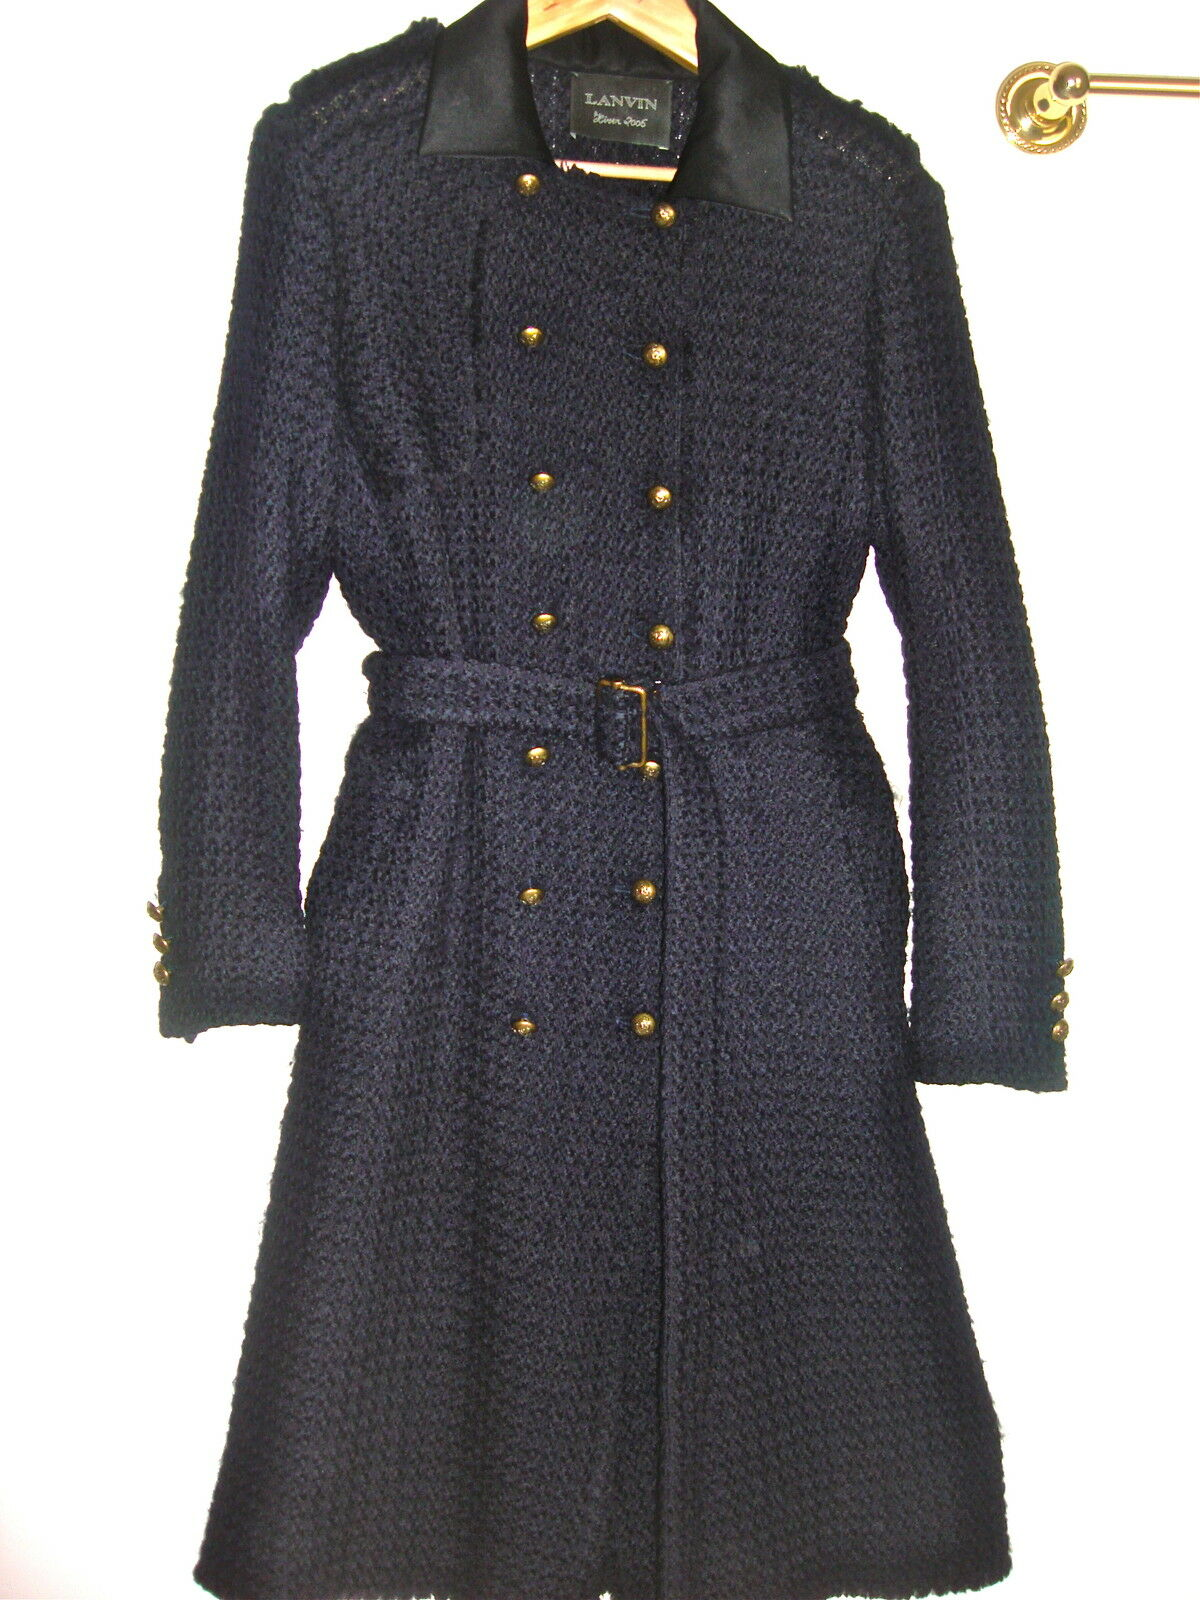 NEW RUNWAY LANVIN COAT US 8 MADE IN FRANCE